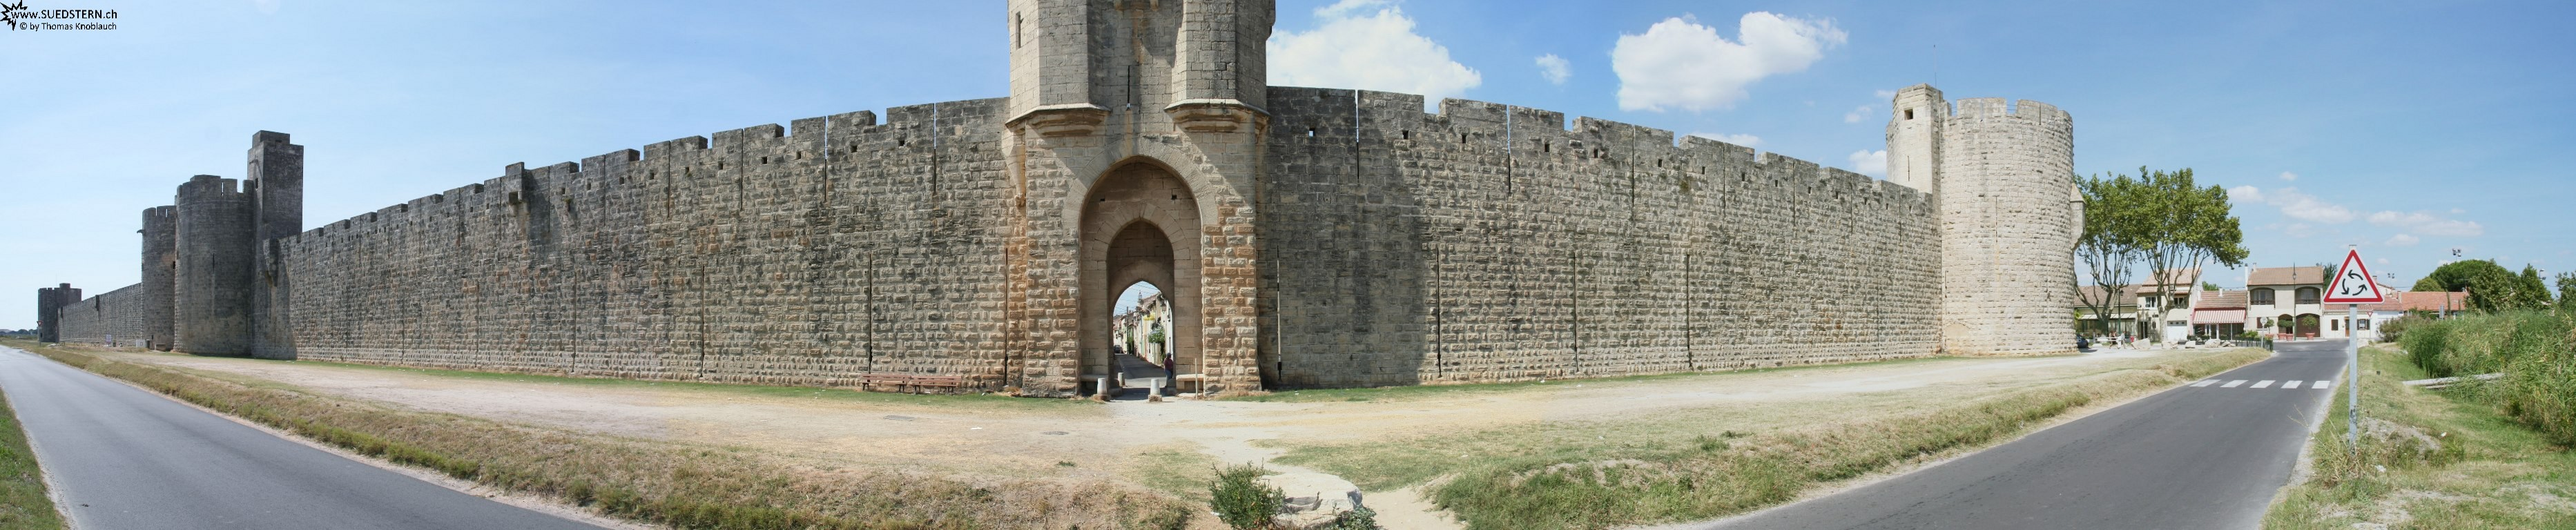 2008-08-27 - Panorama of city wall of Aigues-Mortes 1, france